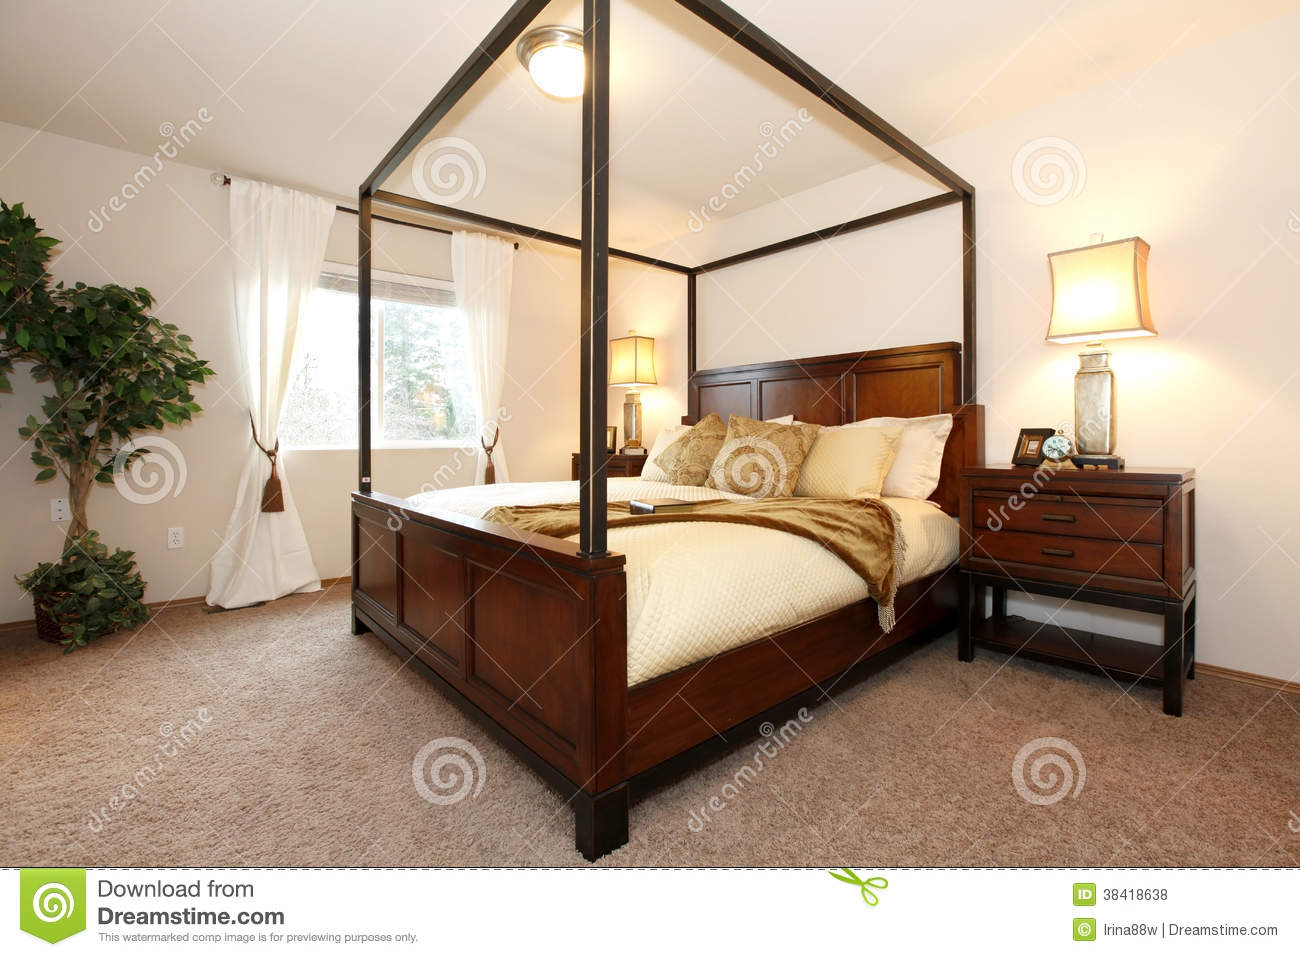 Warm Beautiful Bedroom With A High Posts Bed Royalty Free Stock